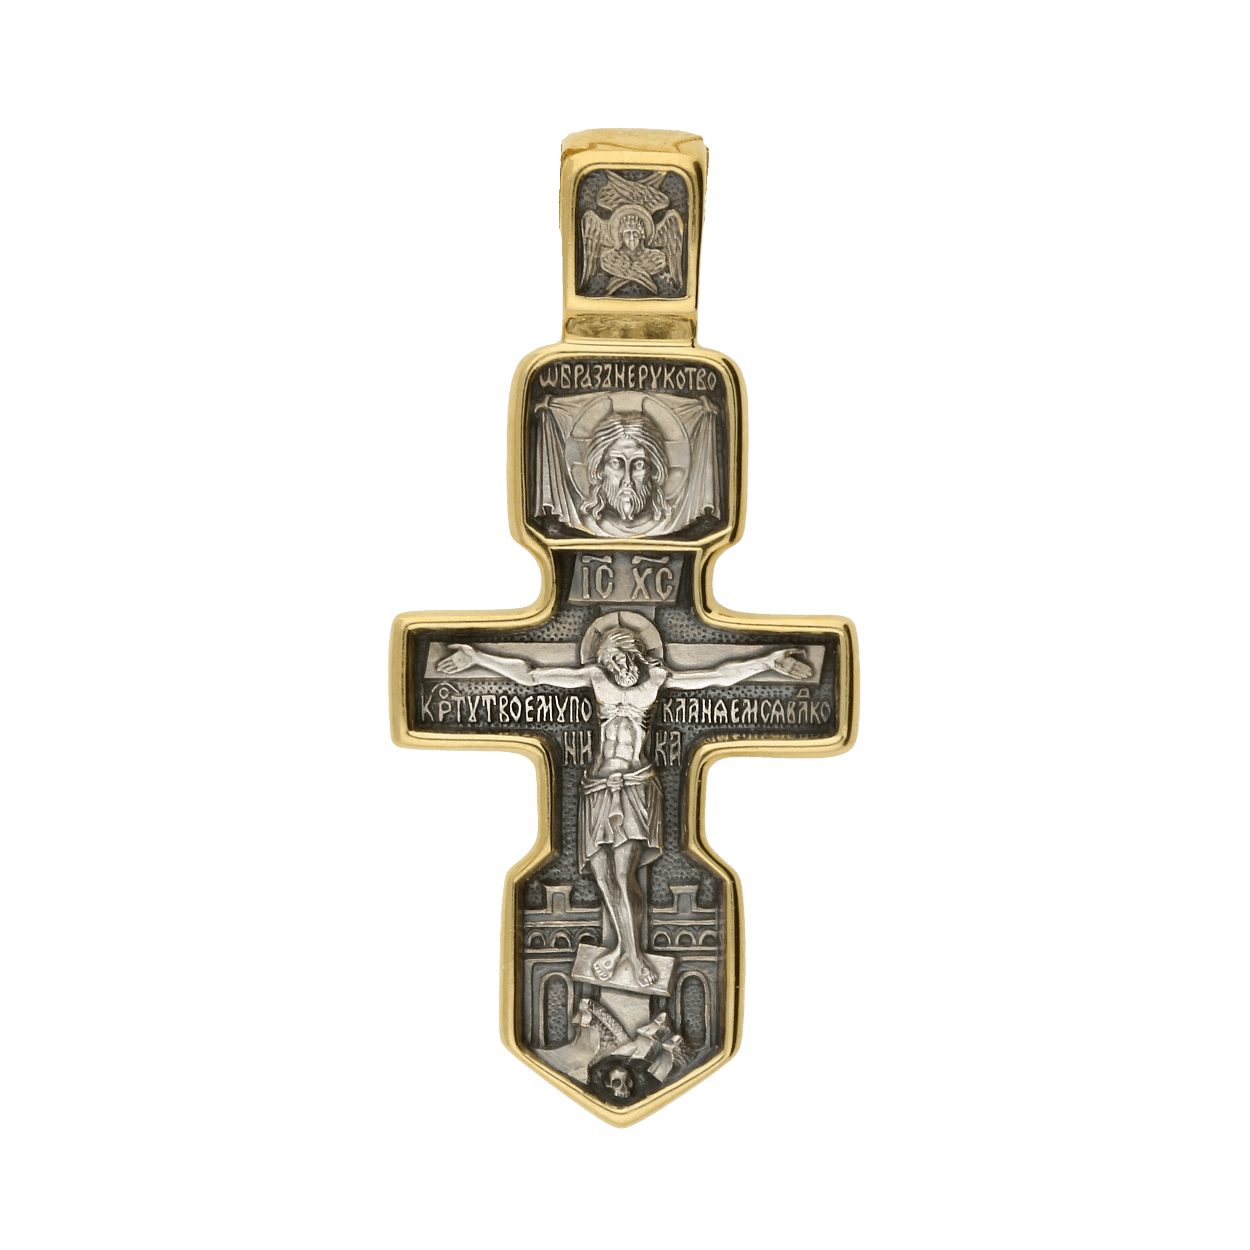 Russian Orthodox silver Cross pendant CRUCFIXION Saint SERAPHIM OF SAROV Master Jeweler Fedorov